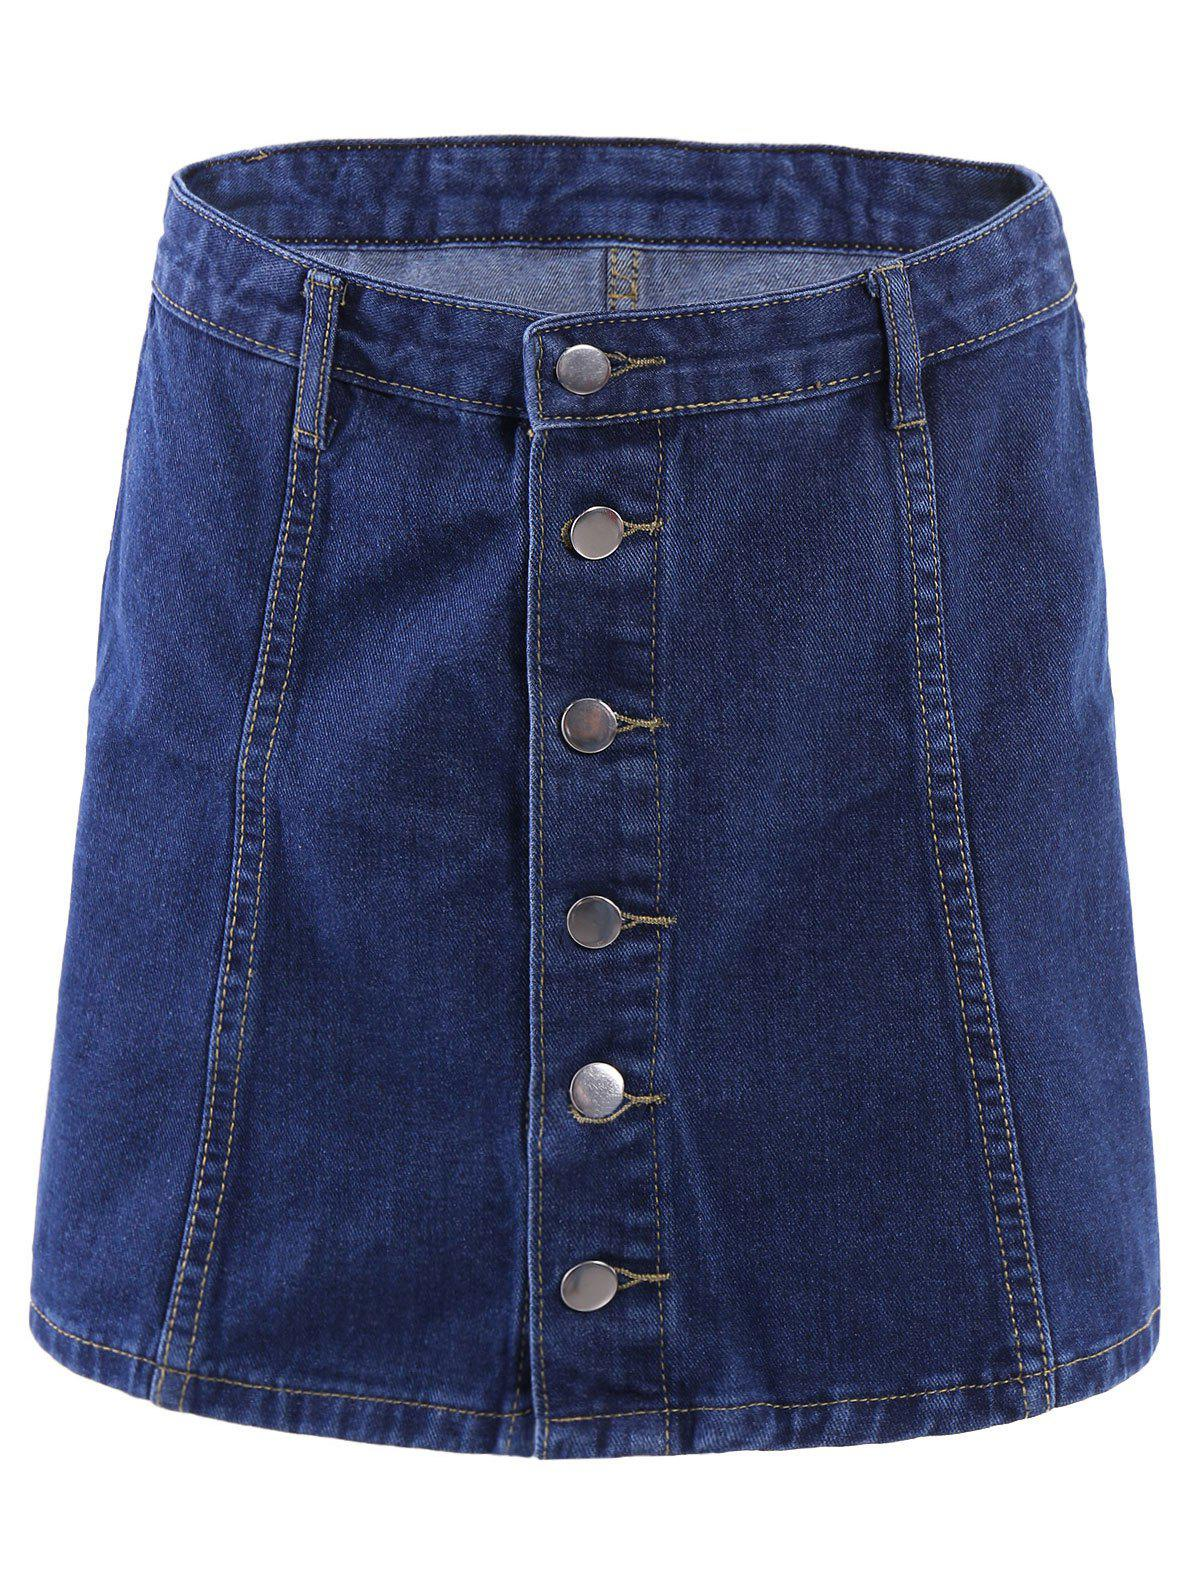 Stylish High-Waisted Button Fly Women's A-Line Denim Skirt - BLUE L